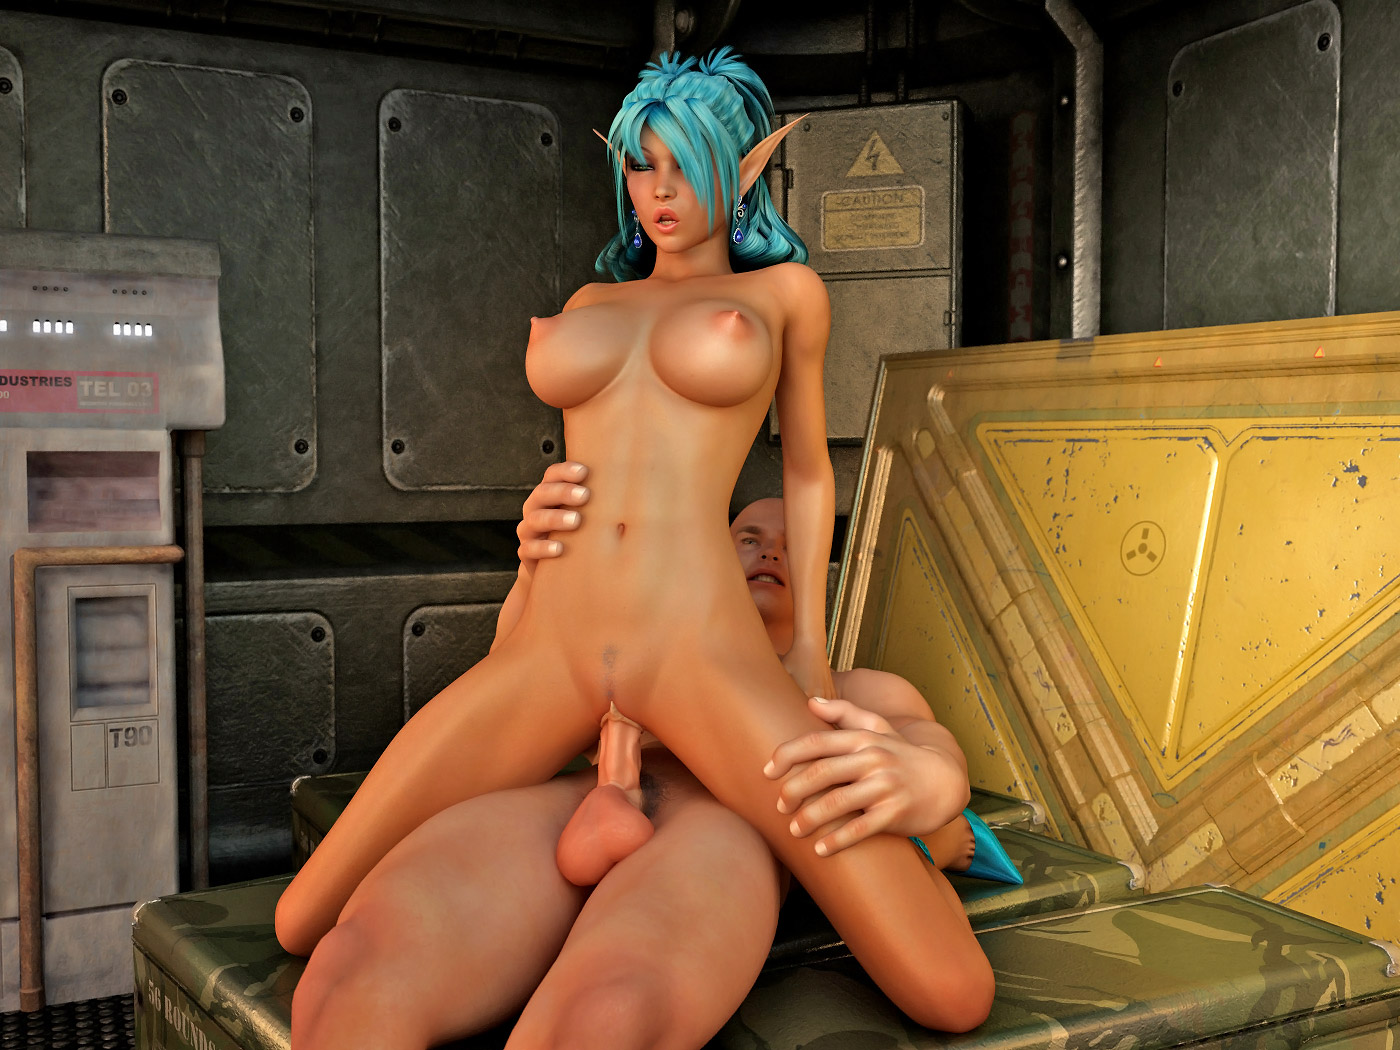 Elf empire nude exposed scene